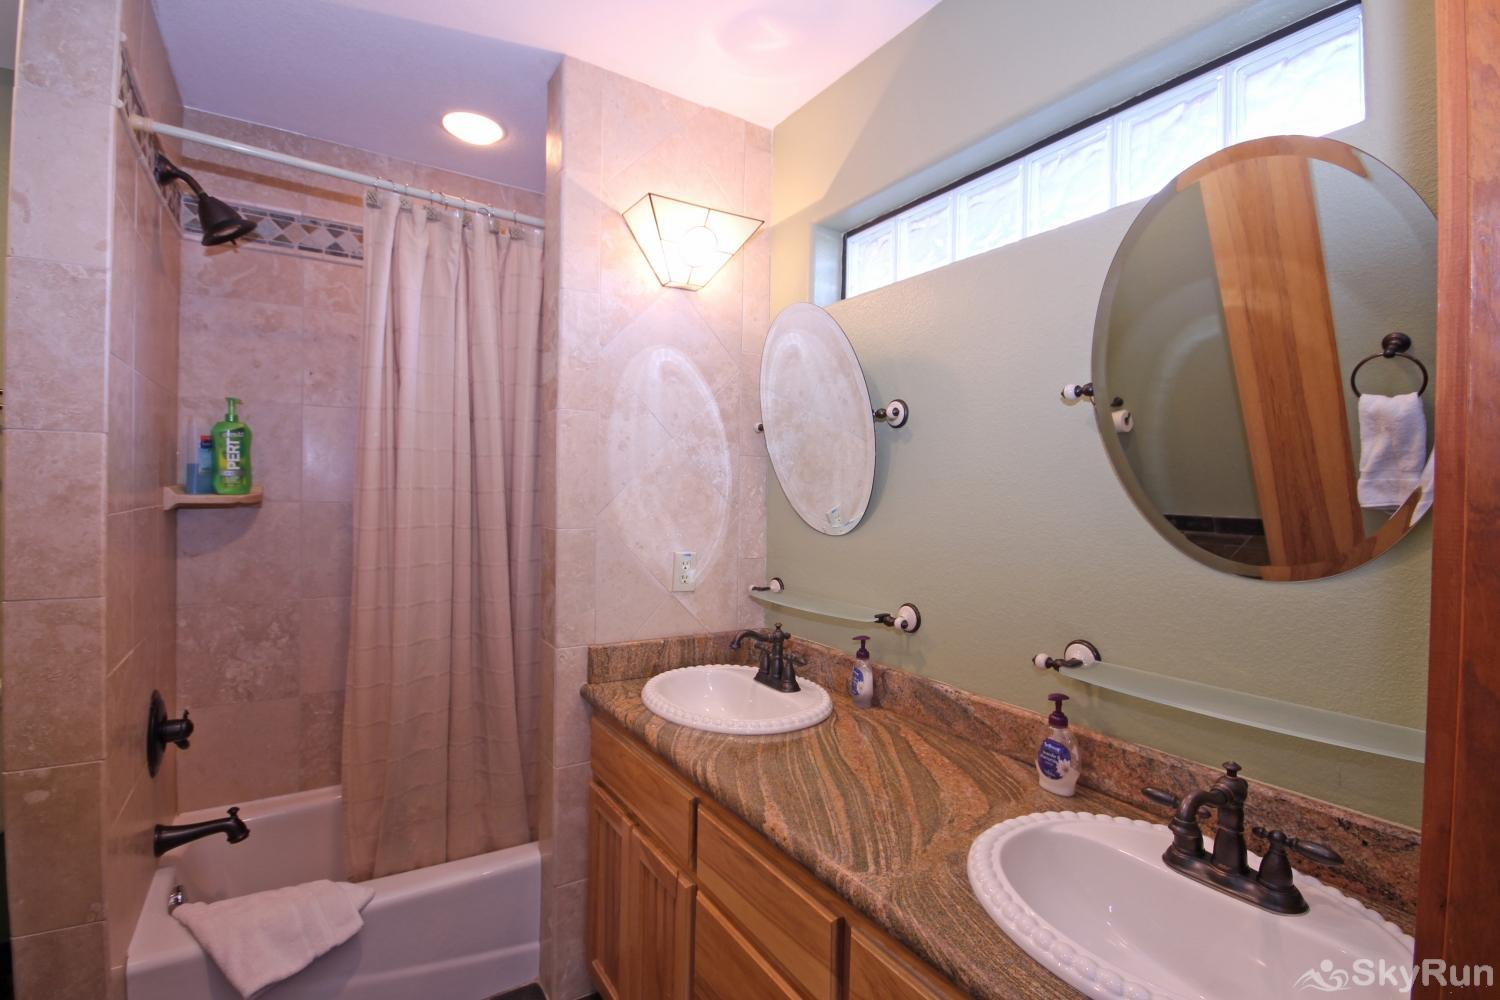 STAR HOUSE Second bathroom with shower/ tub combo